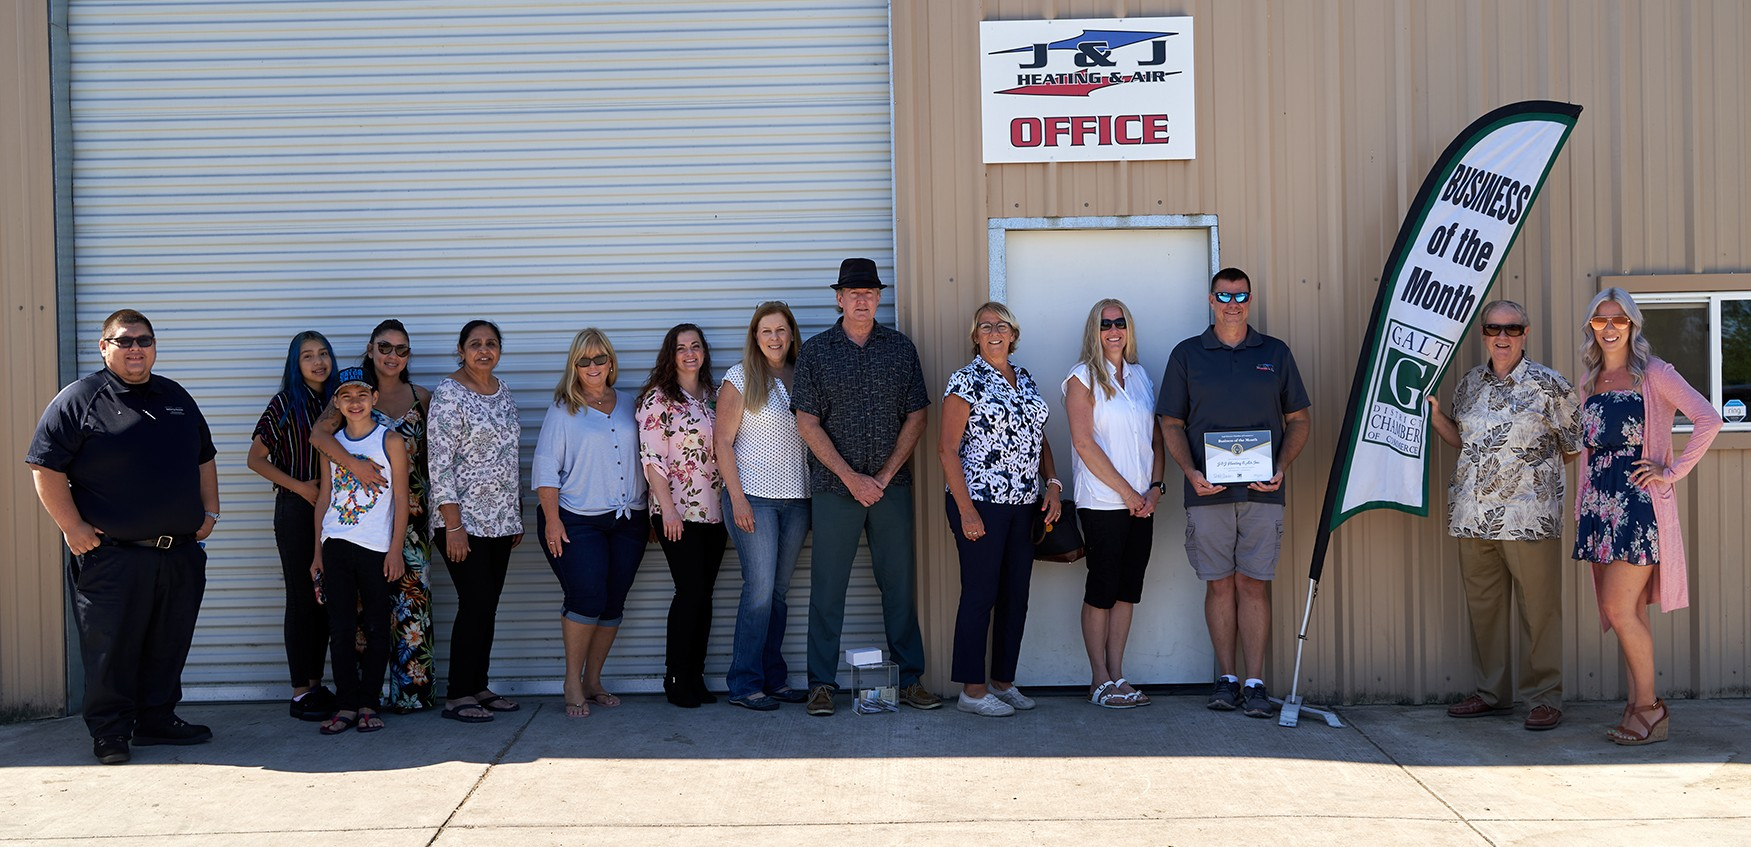 J & J Heating & Air, Inc. Staff Picture for August 2020's Business of the Month